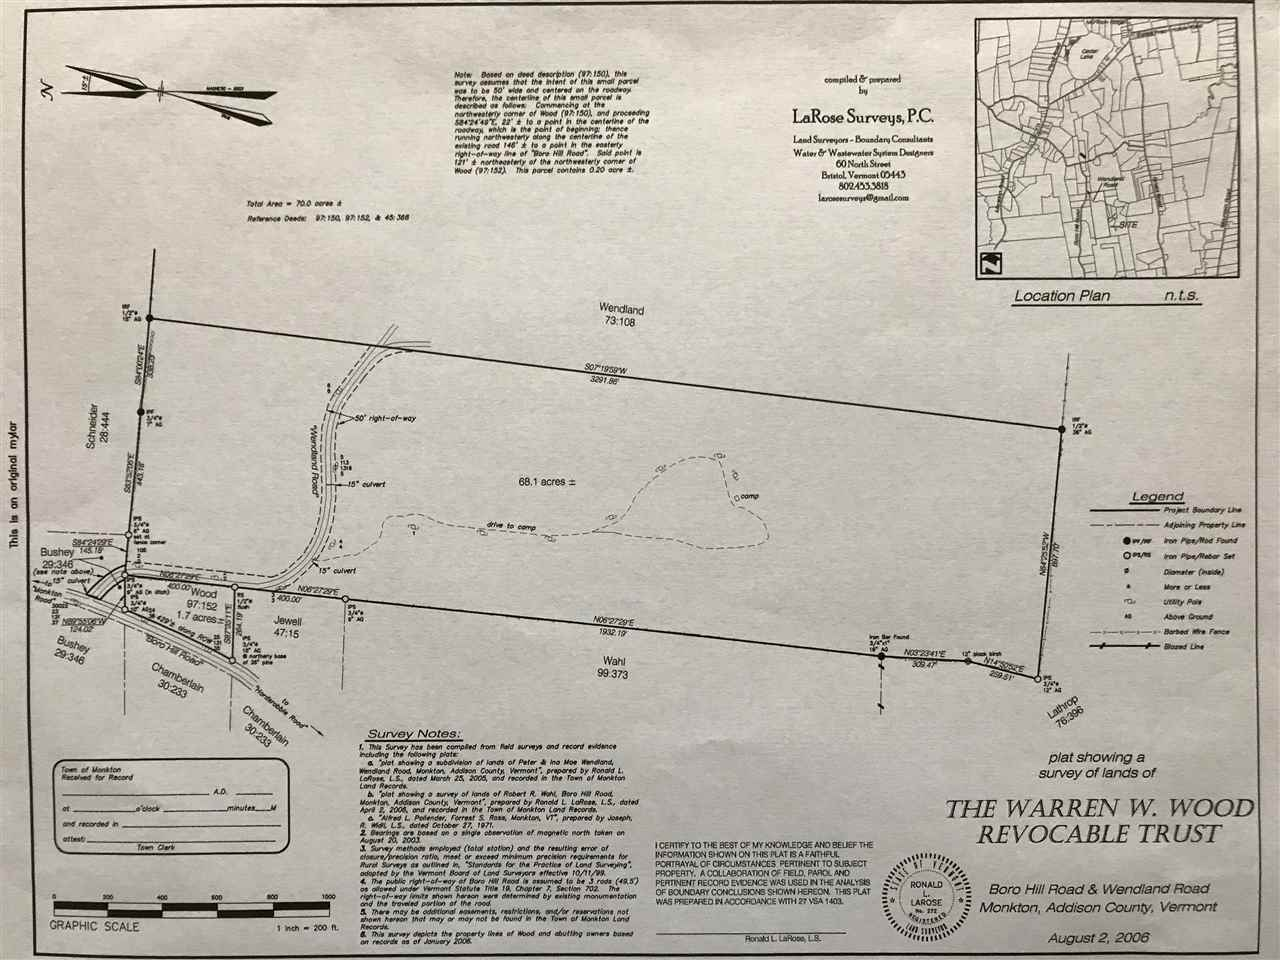 Private wooded lot with potential for western mountain and lake views with clearing.  The land is divided into two separate parcels.  One parcel is 1.7 acres with road frontage along both Boro Hill Rd and Wendland Rd, the other lot is 68.1 acres on Wendland Rd.  The larger parcel has an old road leading into an old camp that previously had electricity.  Great opportunity for recreational land, potentially building your next home and possible subdivision.